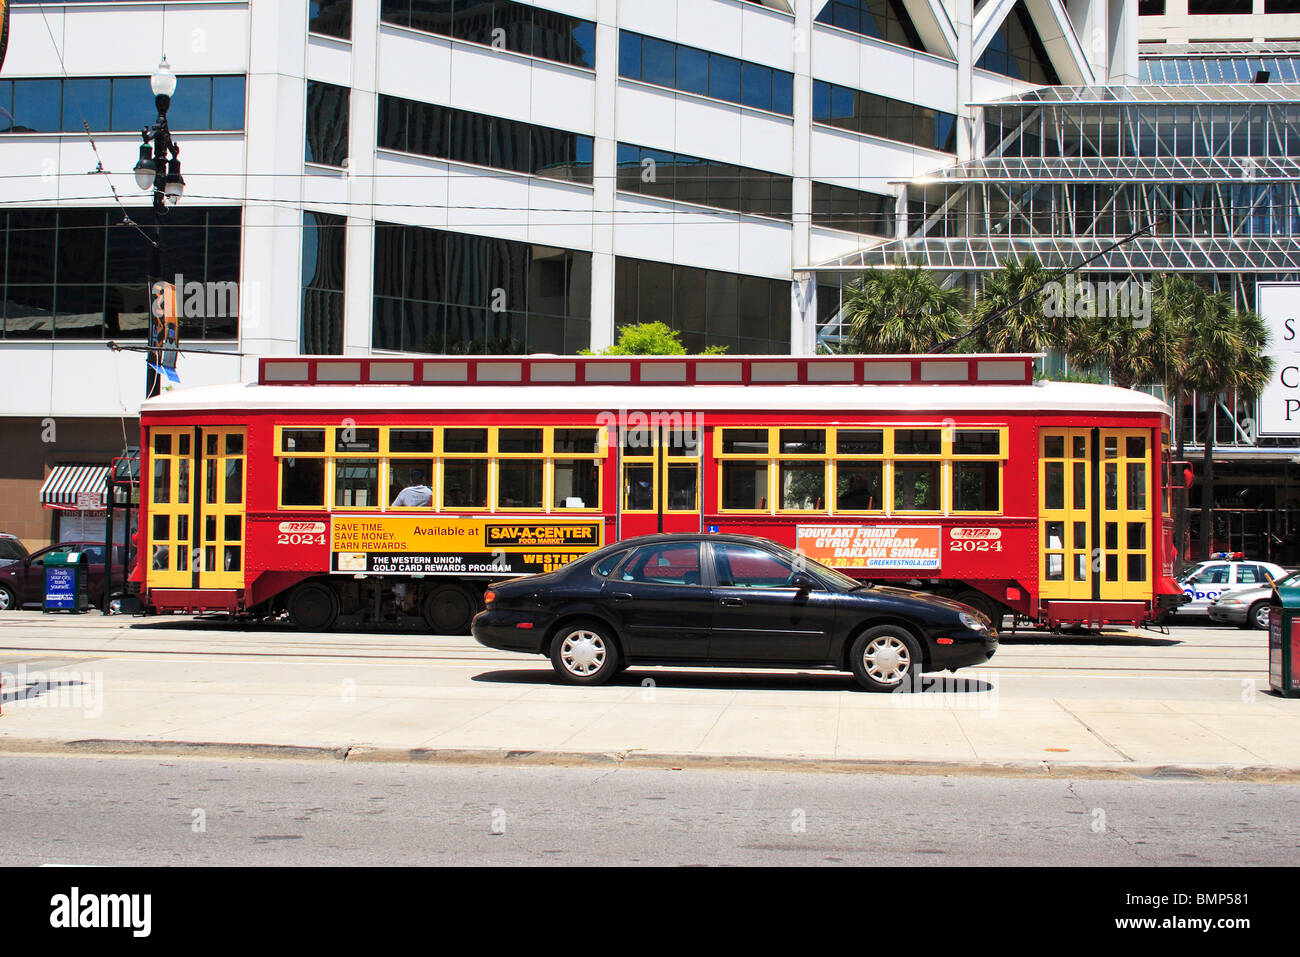 A private car and public transportation ; canal street ; New Orleans ; Louisiana ; U.S.A. United States of America Stock Photo